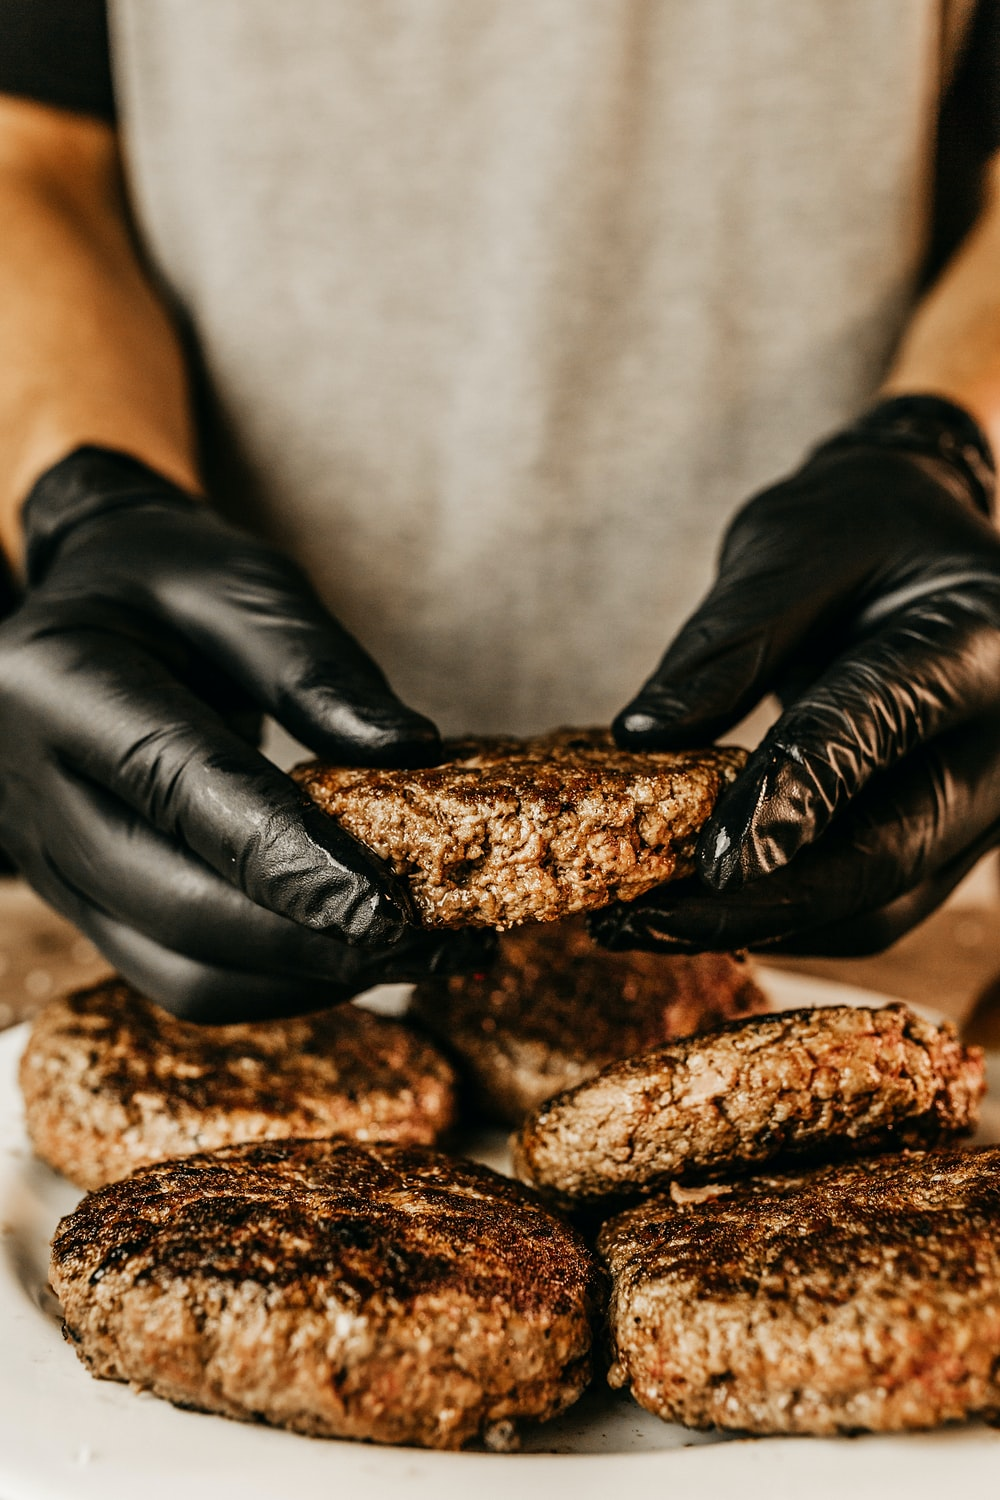 person in black leather gloves holding brown bread